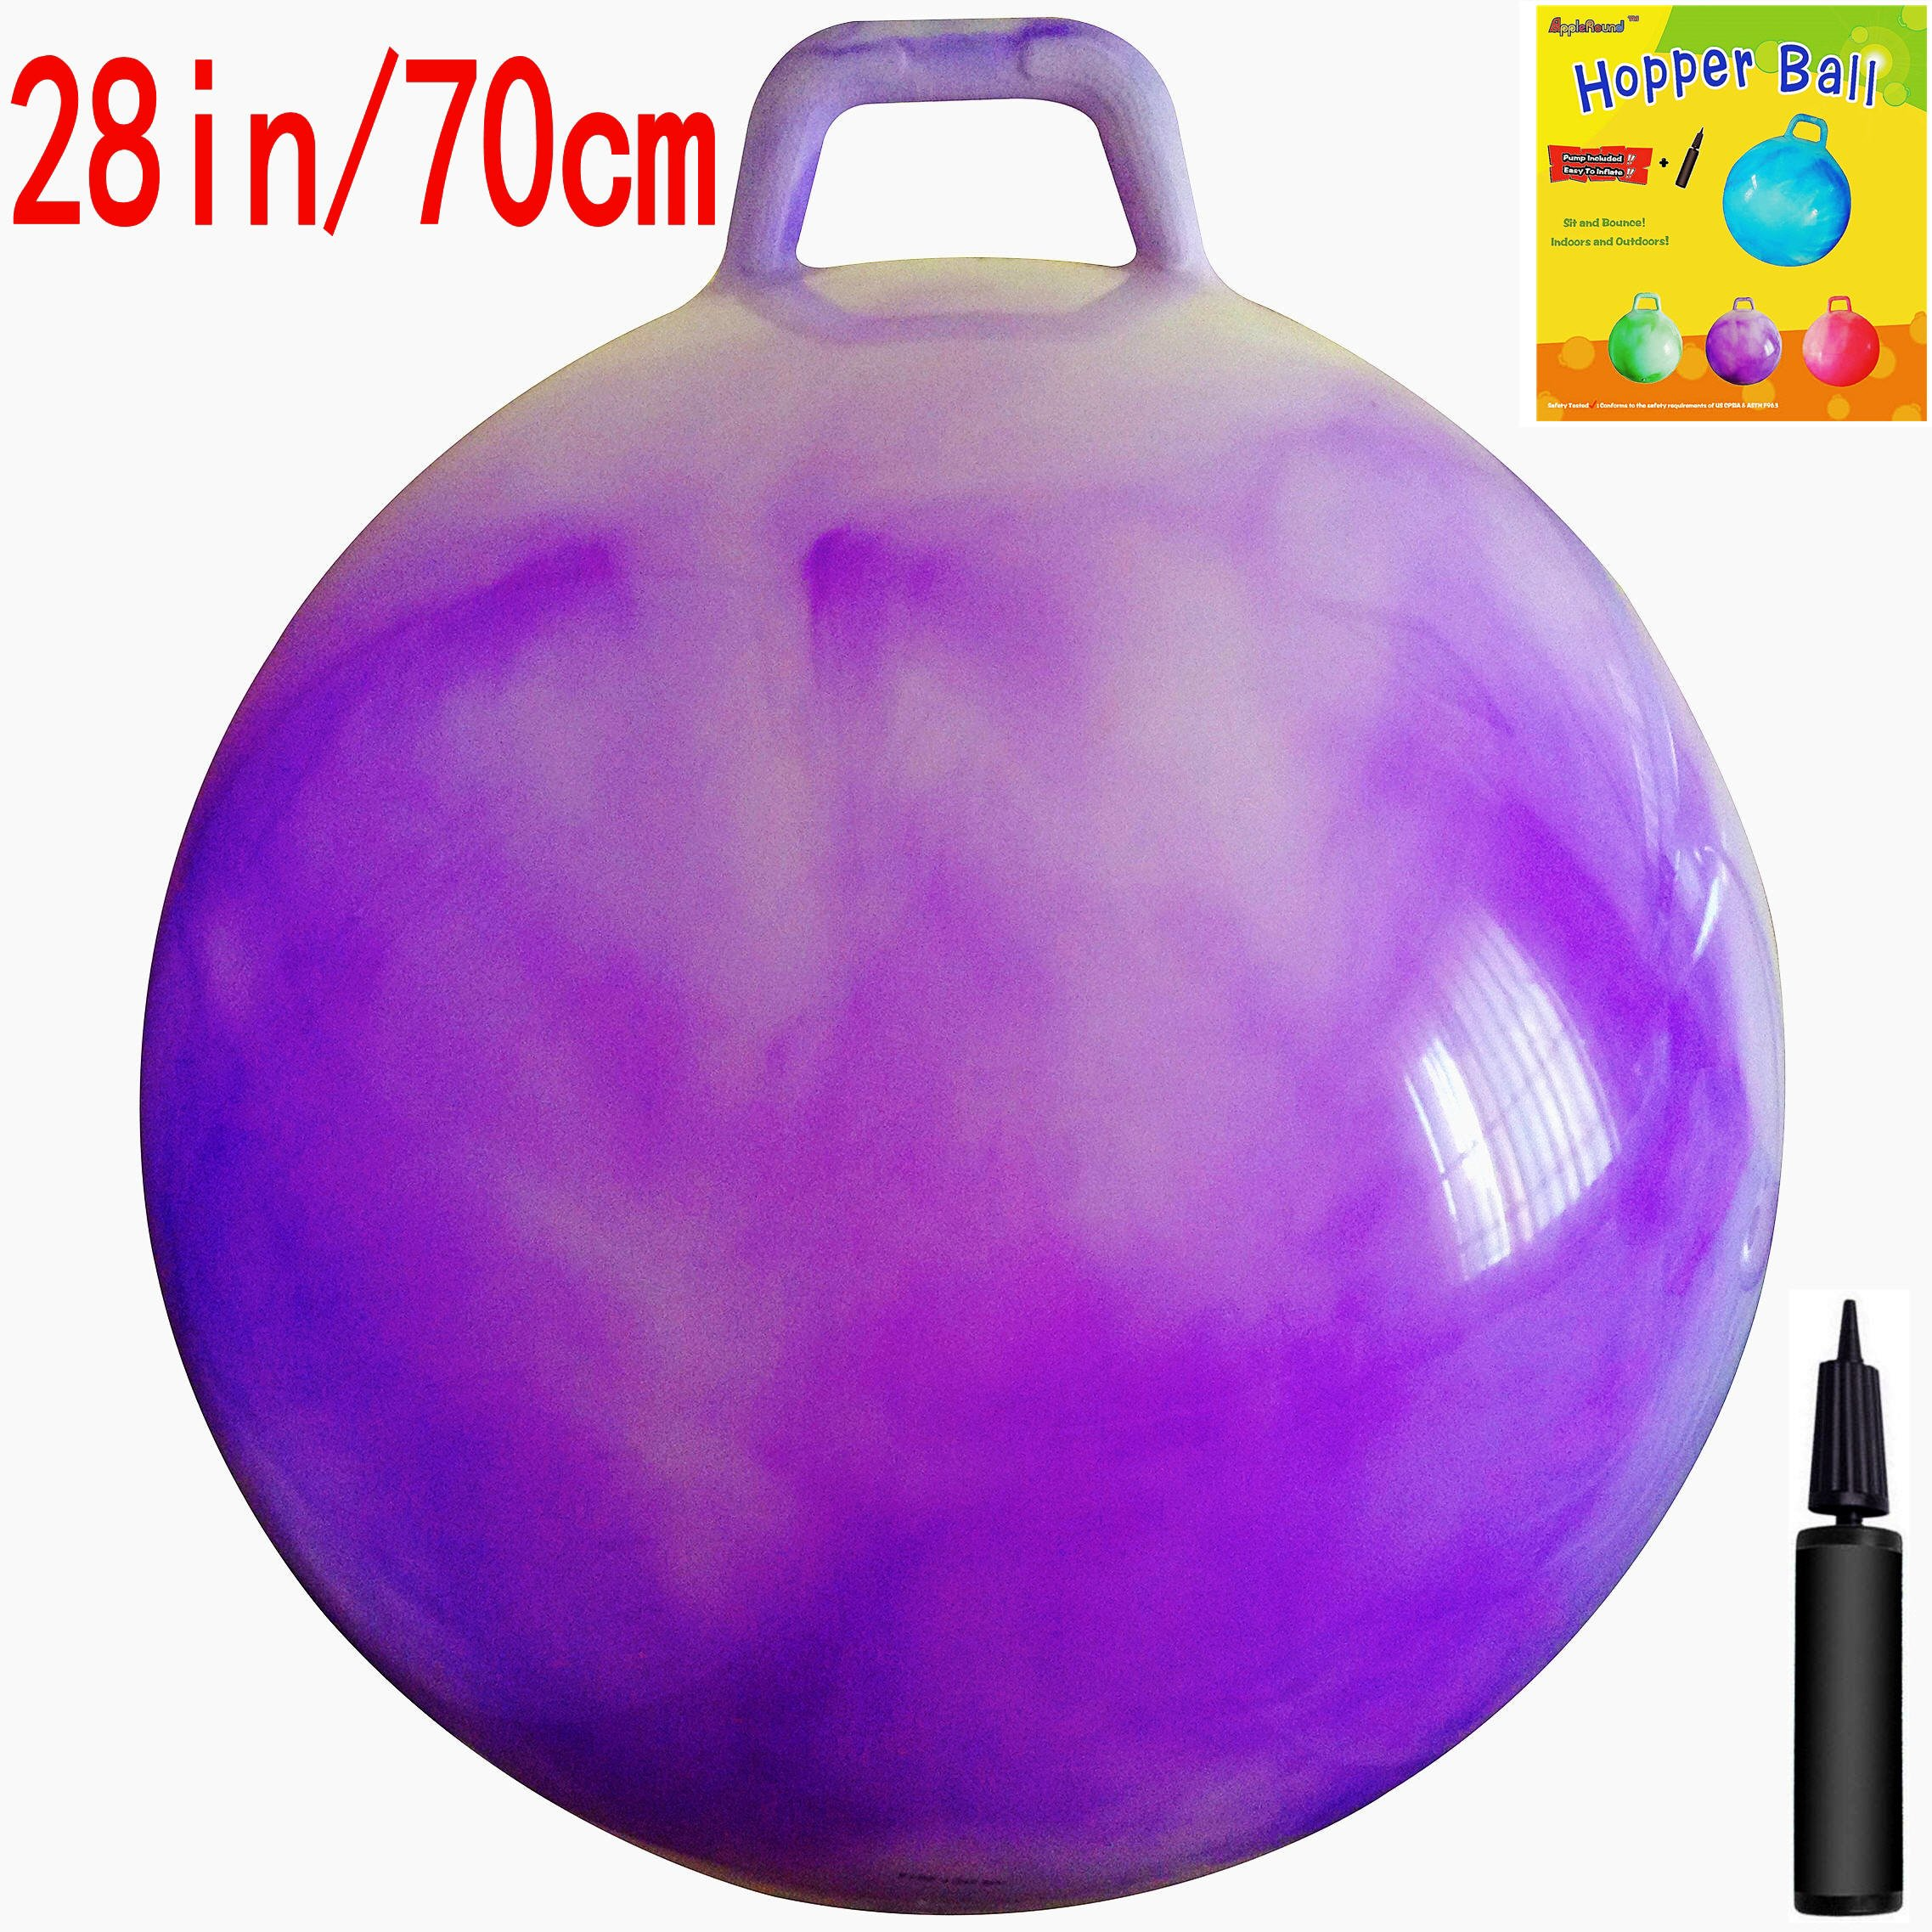 AppleRound Space Hopper Ball with Air Pump: 28in/70cm Diameter for Age 13+, Hop Ball, Kangaroo Bouncer, Hoppity Hop, Jumping Ball, Sit & Bounce by AppleRound (Image #1)